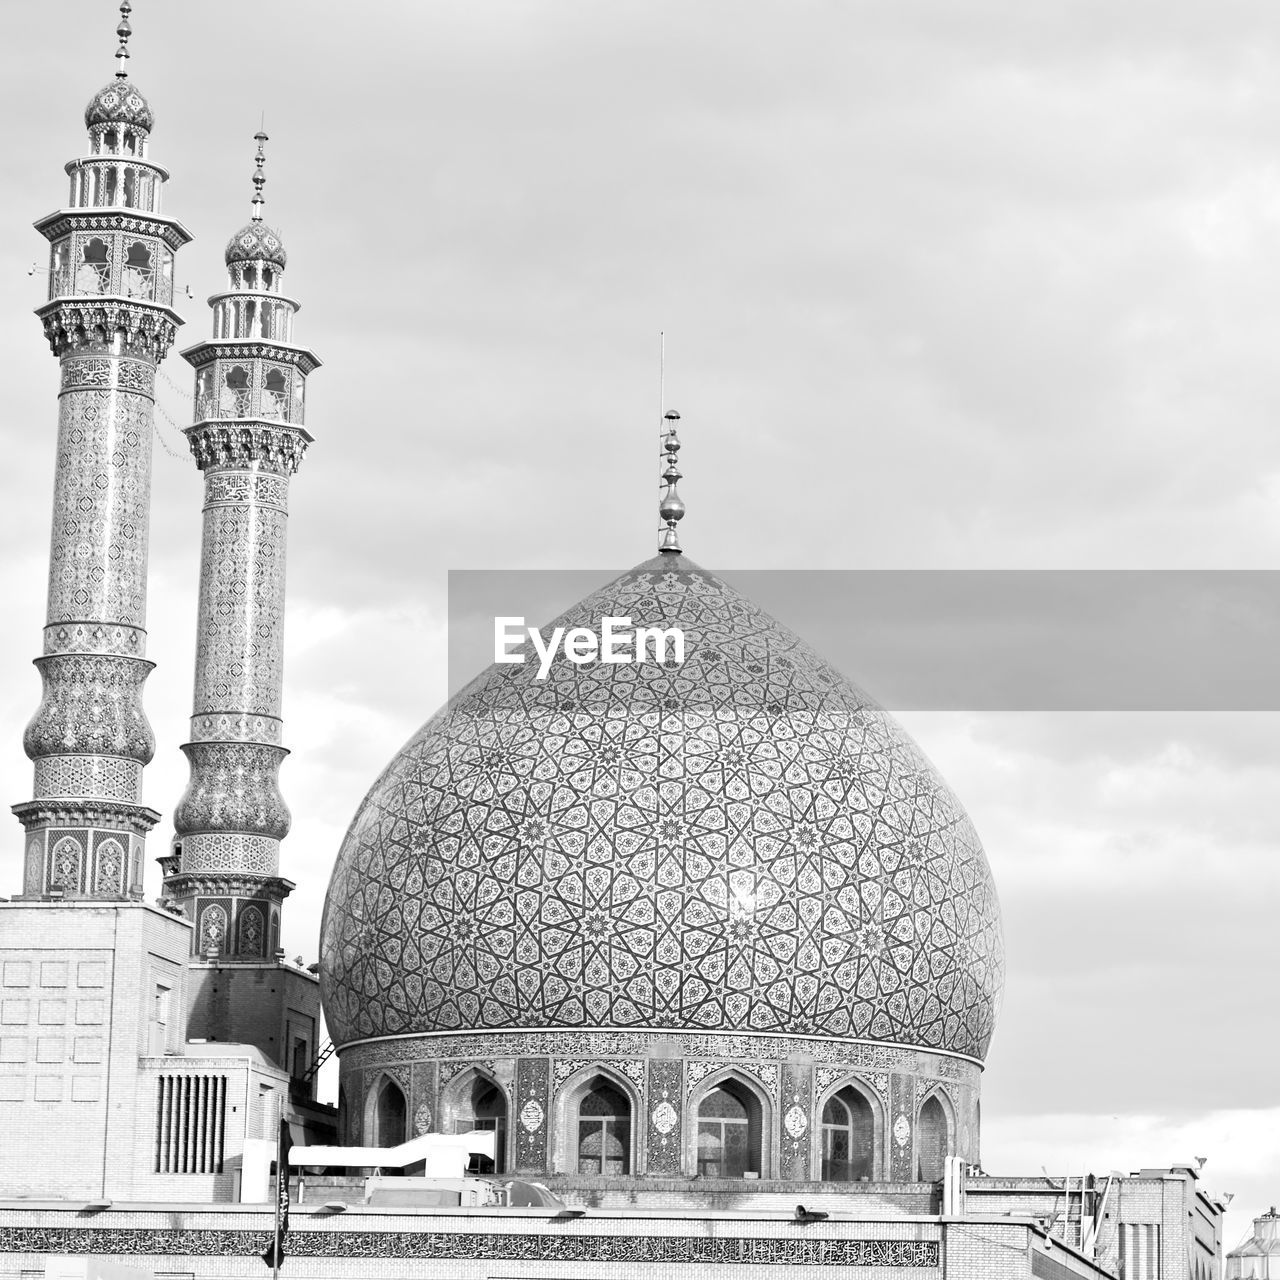 architecture, built structure, sky, building exterior, dome, building, travel destinations, travel, tourism, religion, history, the past, cloud - sky, place of worship, belief, city, low angle view, nature, arch, no people, outdoors, spire, architectural column, ornate